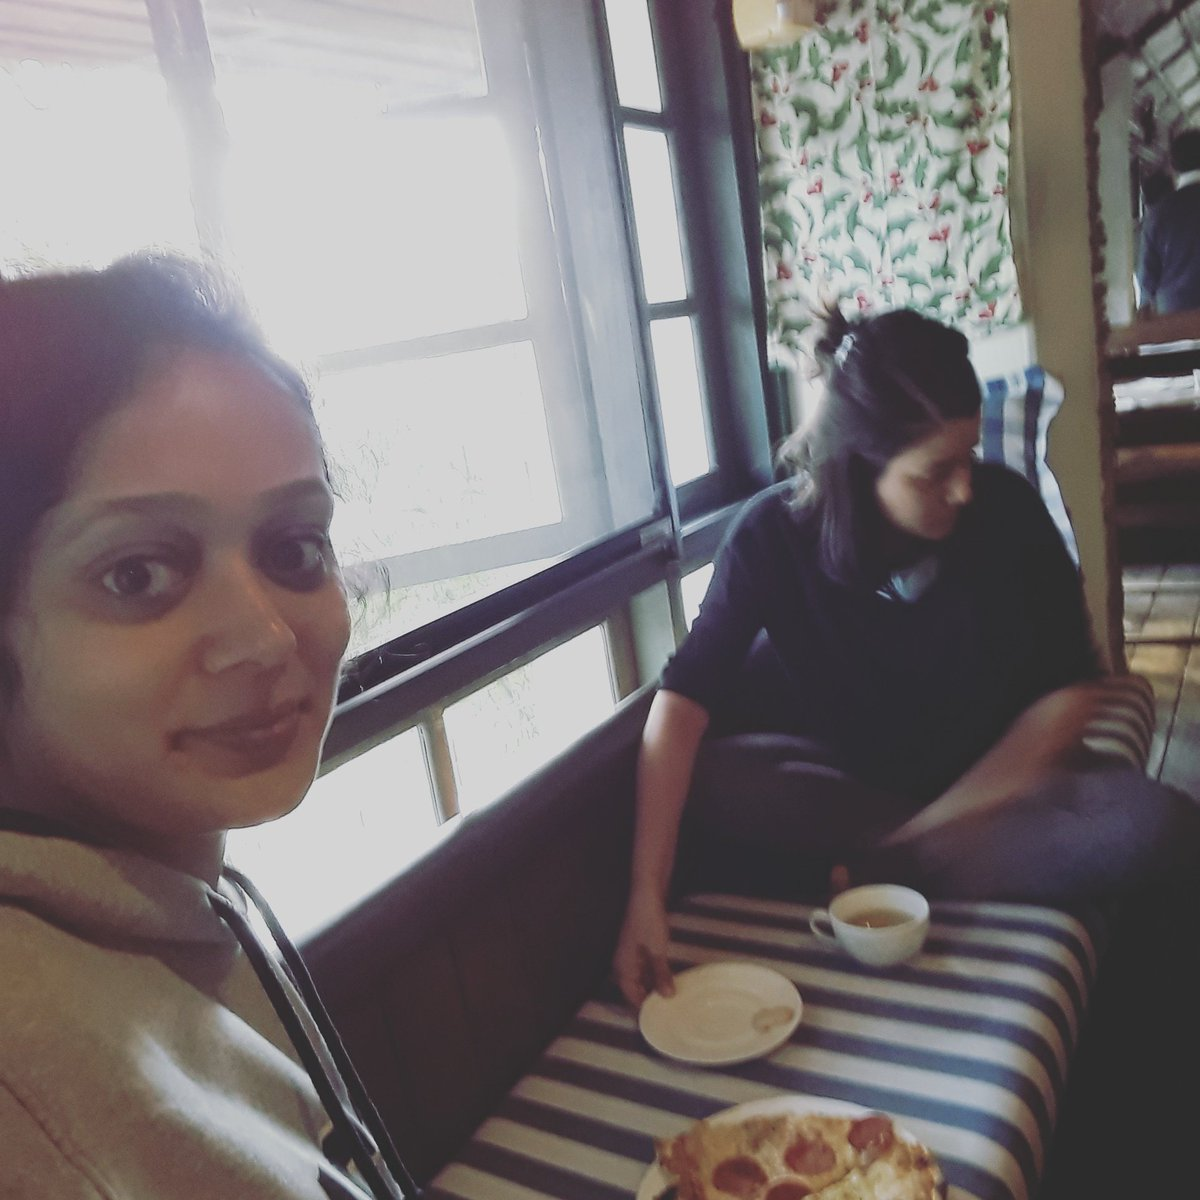 Nothing says better #lunch than a #pizza with a #friend #funtimes #love #loveforfood #Foodiechats #happiness #friendzone #awesomeness<br>http://pic.twitter.com/E60hcOMYWz